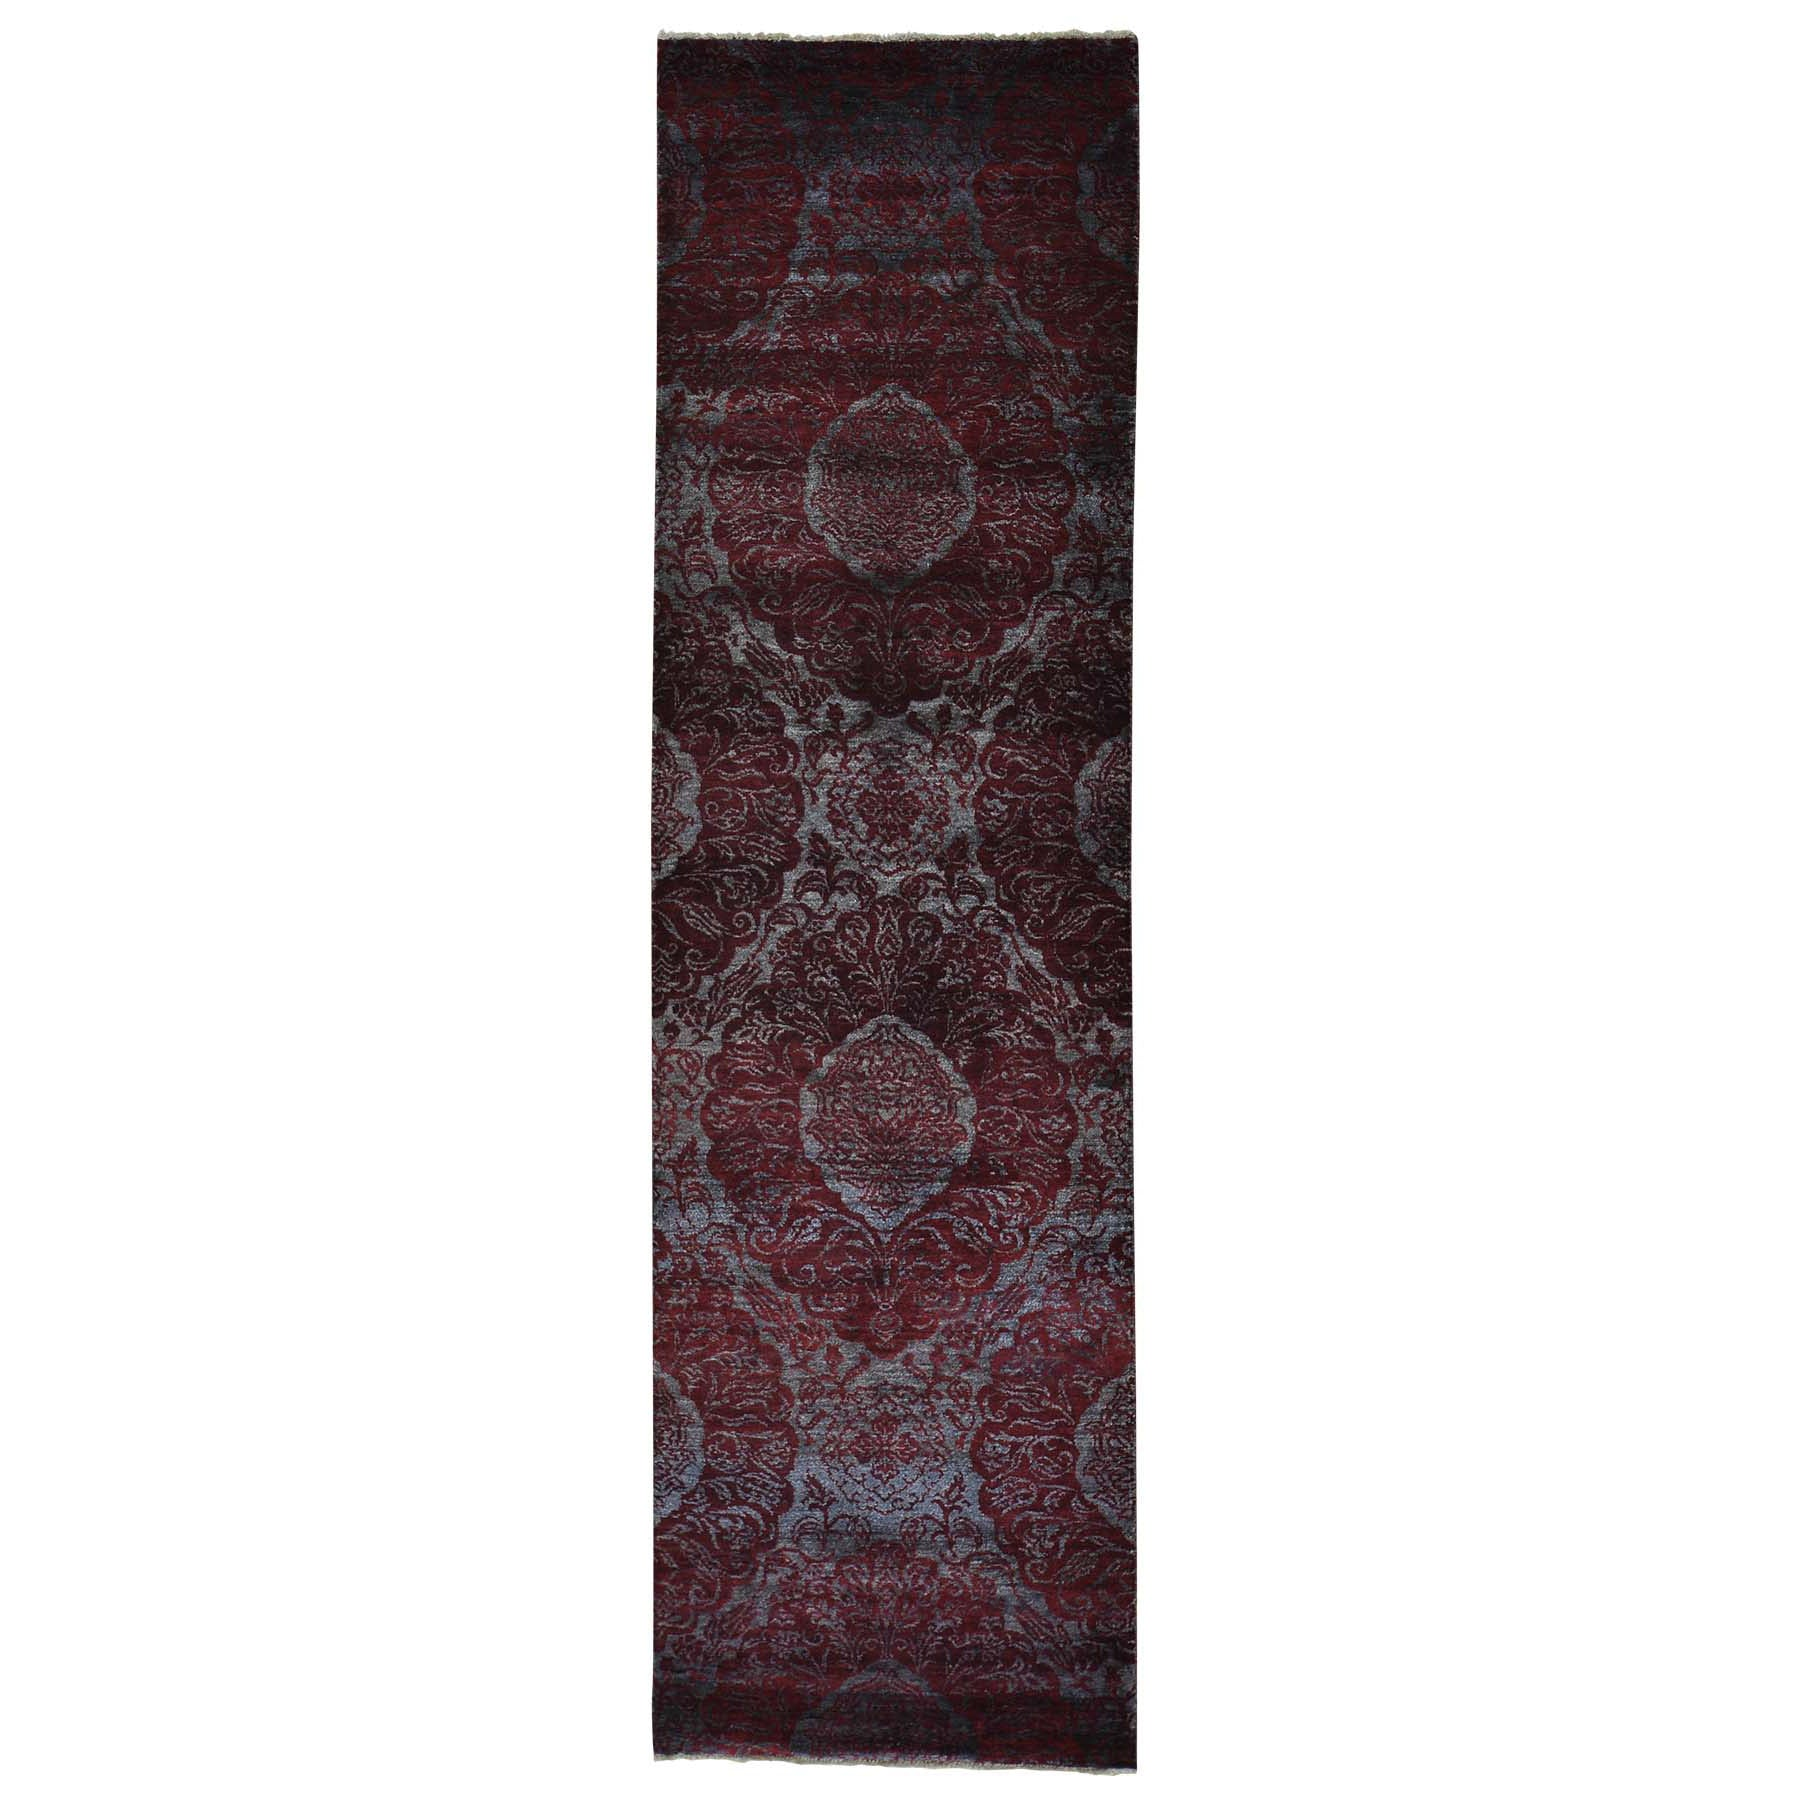 "Handmade Modern and Contemporary Runner Rug > Design# SH27450 > Size: 2'-9"" x 9'-9"" [ONLINE ONLY]"